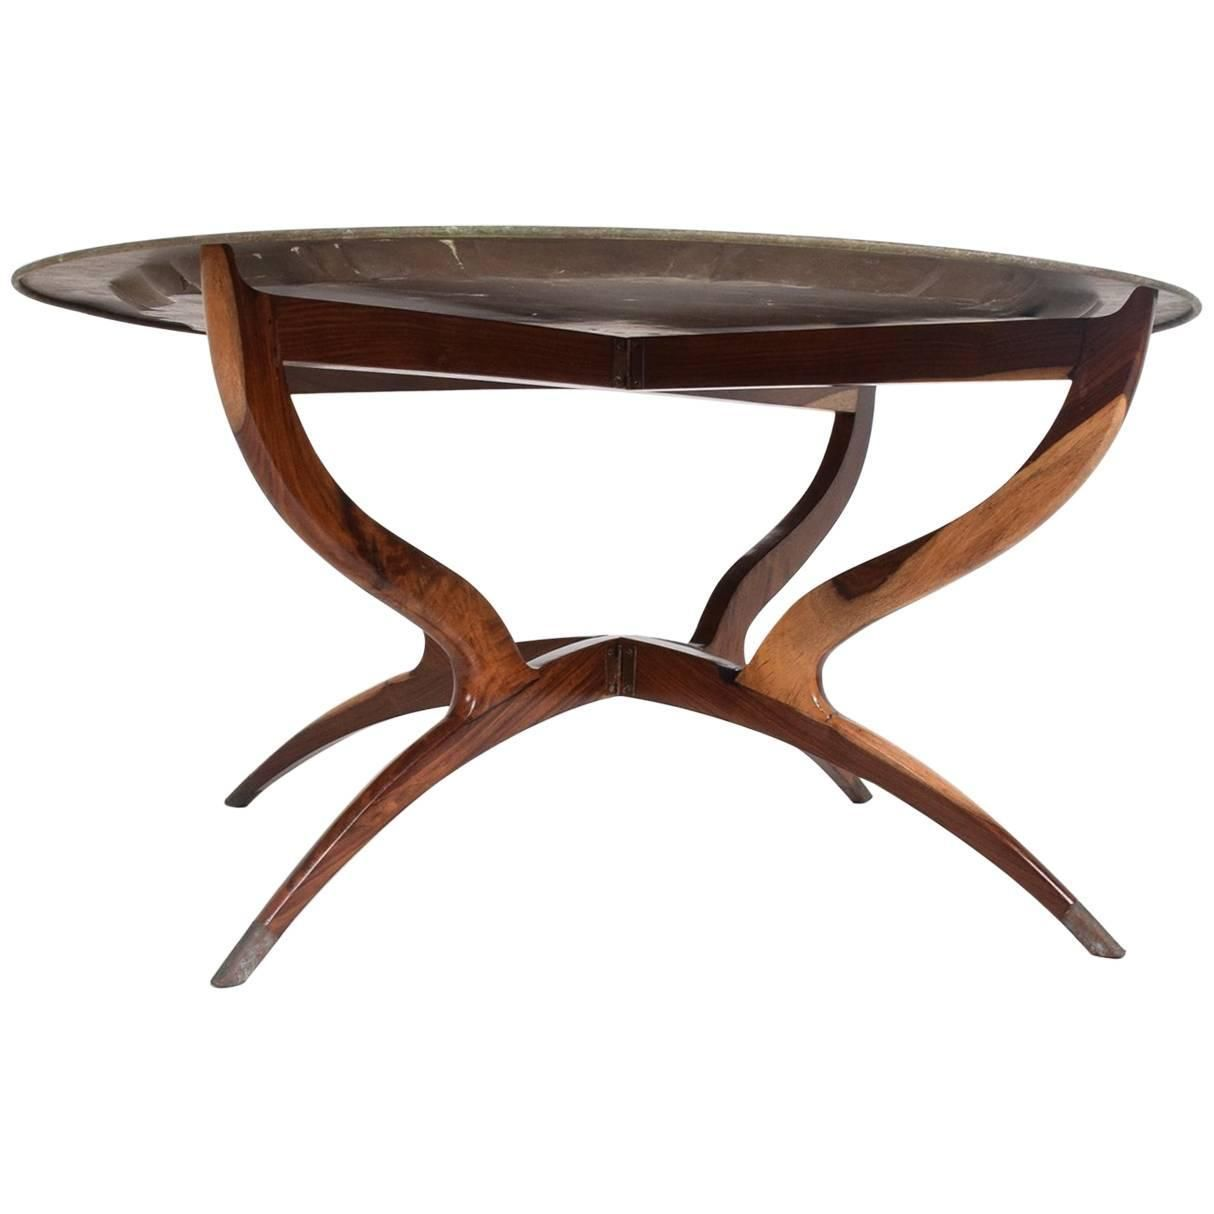 Hollywood Regency Oriental Brass Top Tray Rosewood Base Coffee Table Coffee Tables For Sale Coffee Table Table [ 1214 x 1214 Pixel ]